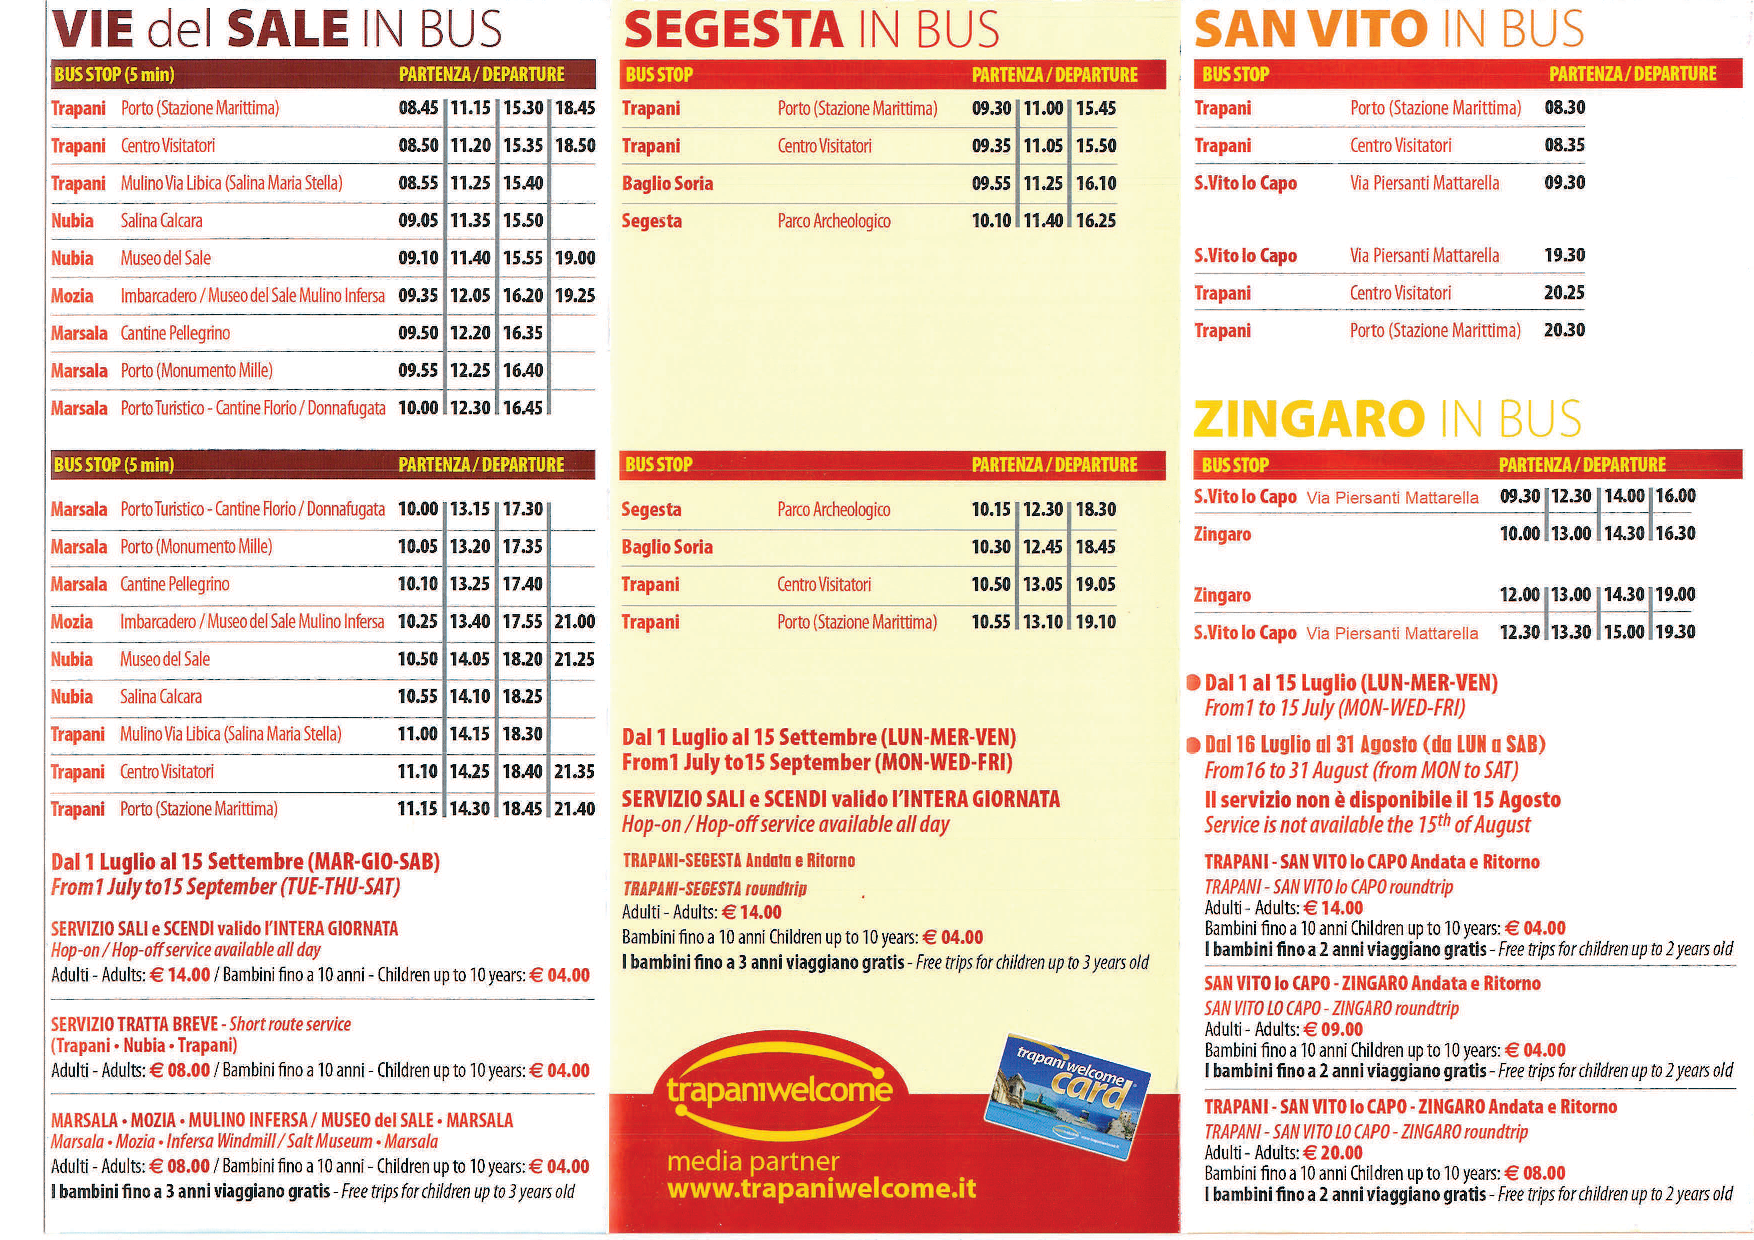 La-Via-del-Sale-in-Bus-Itinerario-ed-orari-bus